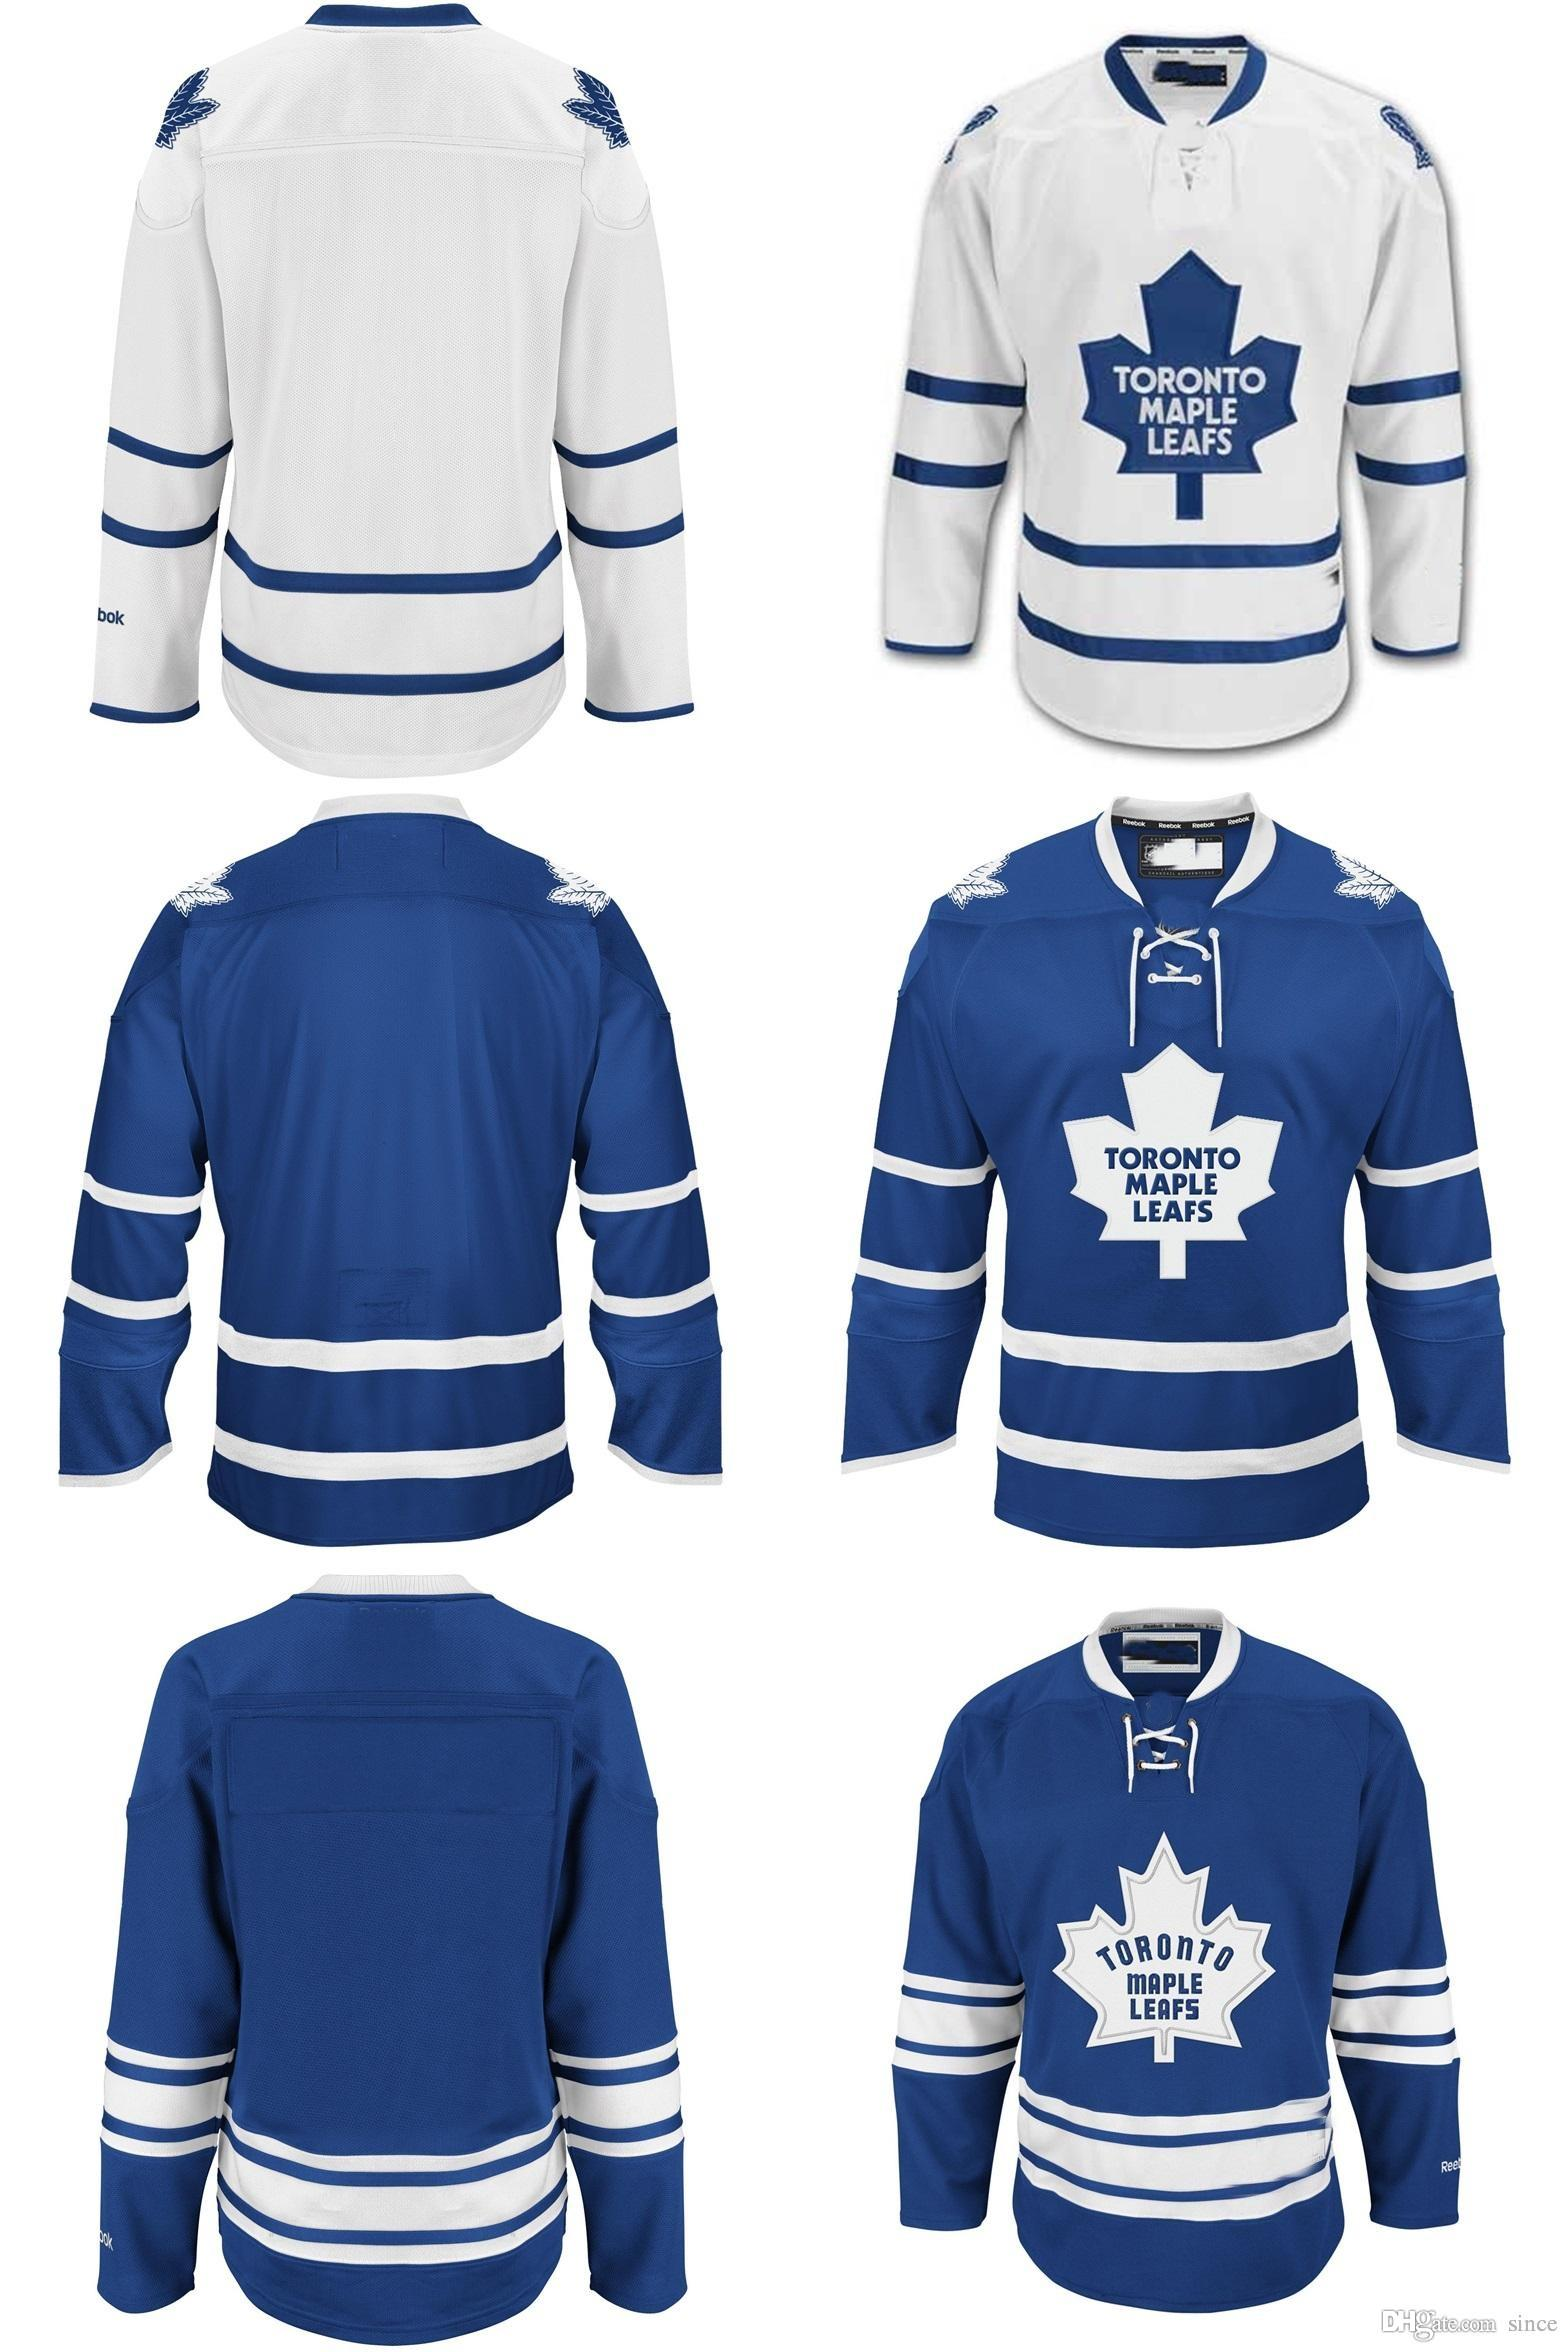 ... blue home breakaway player jersey c1e18 30966  best price 2018 top  quality 2016 newest custom toronto maple leafs mens youth premier winter  classic 2dc3397a9